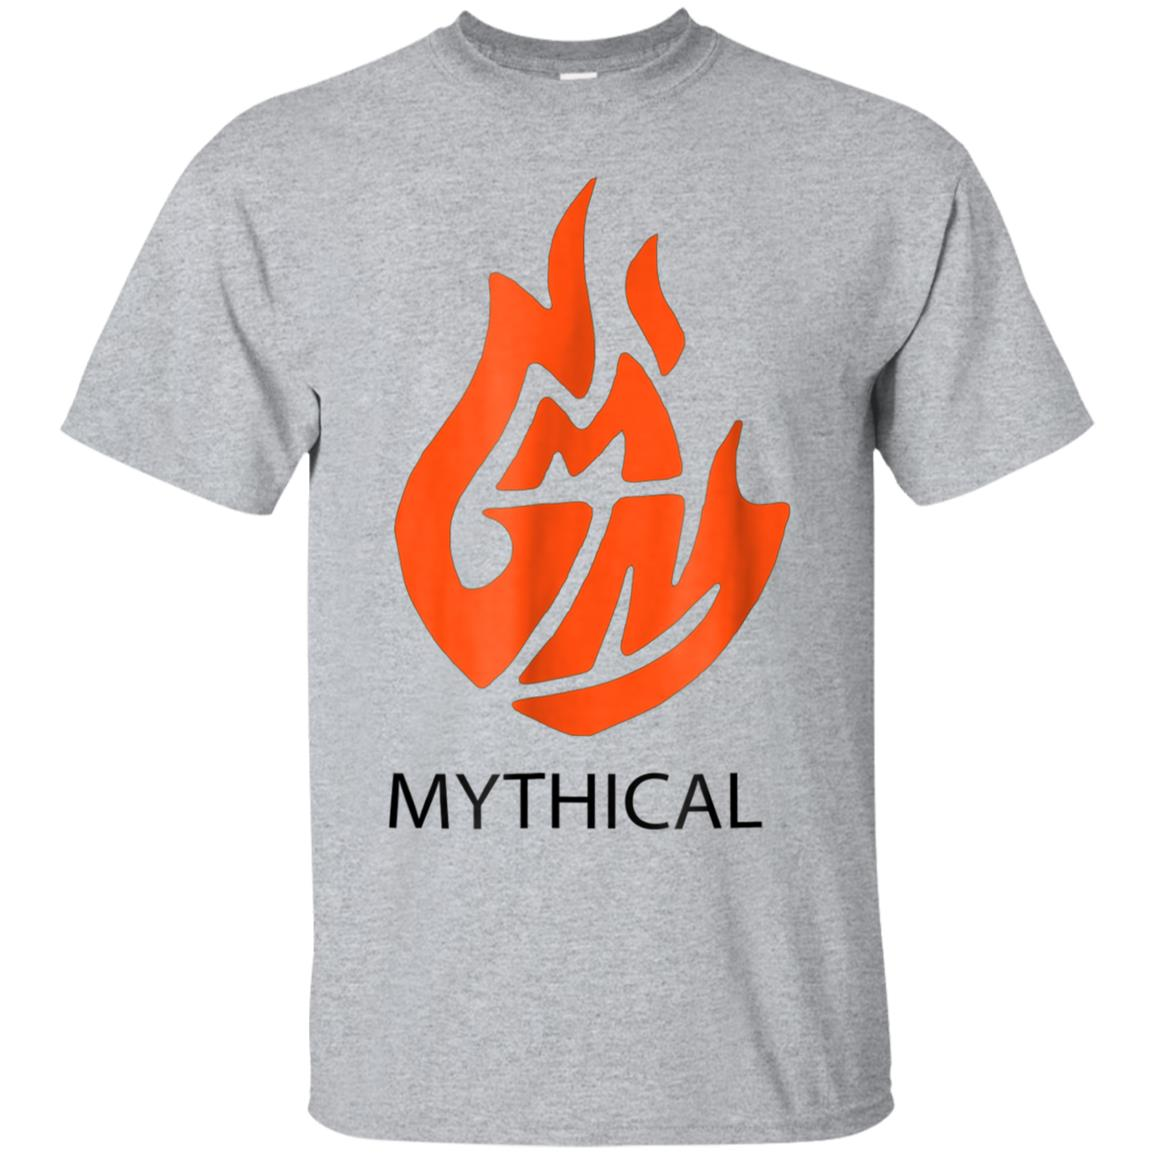 Mythical T-shirt 99promocode